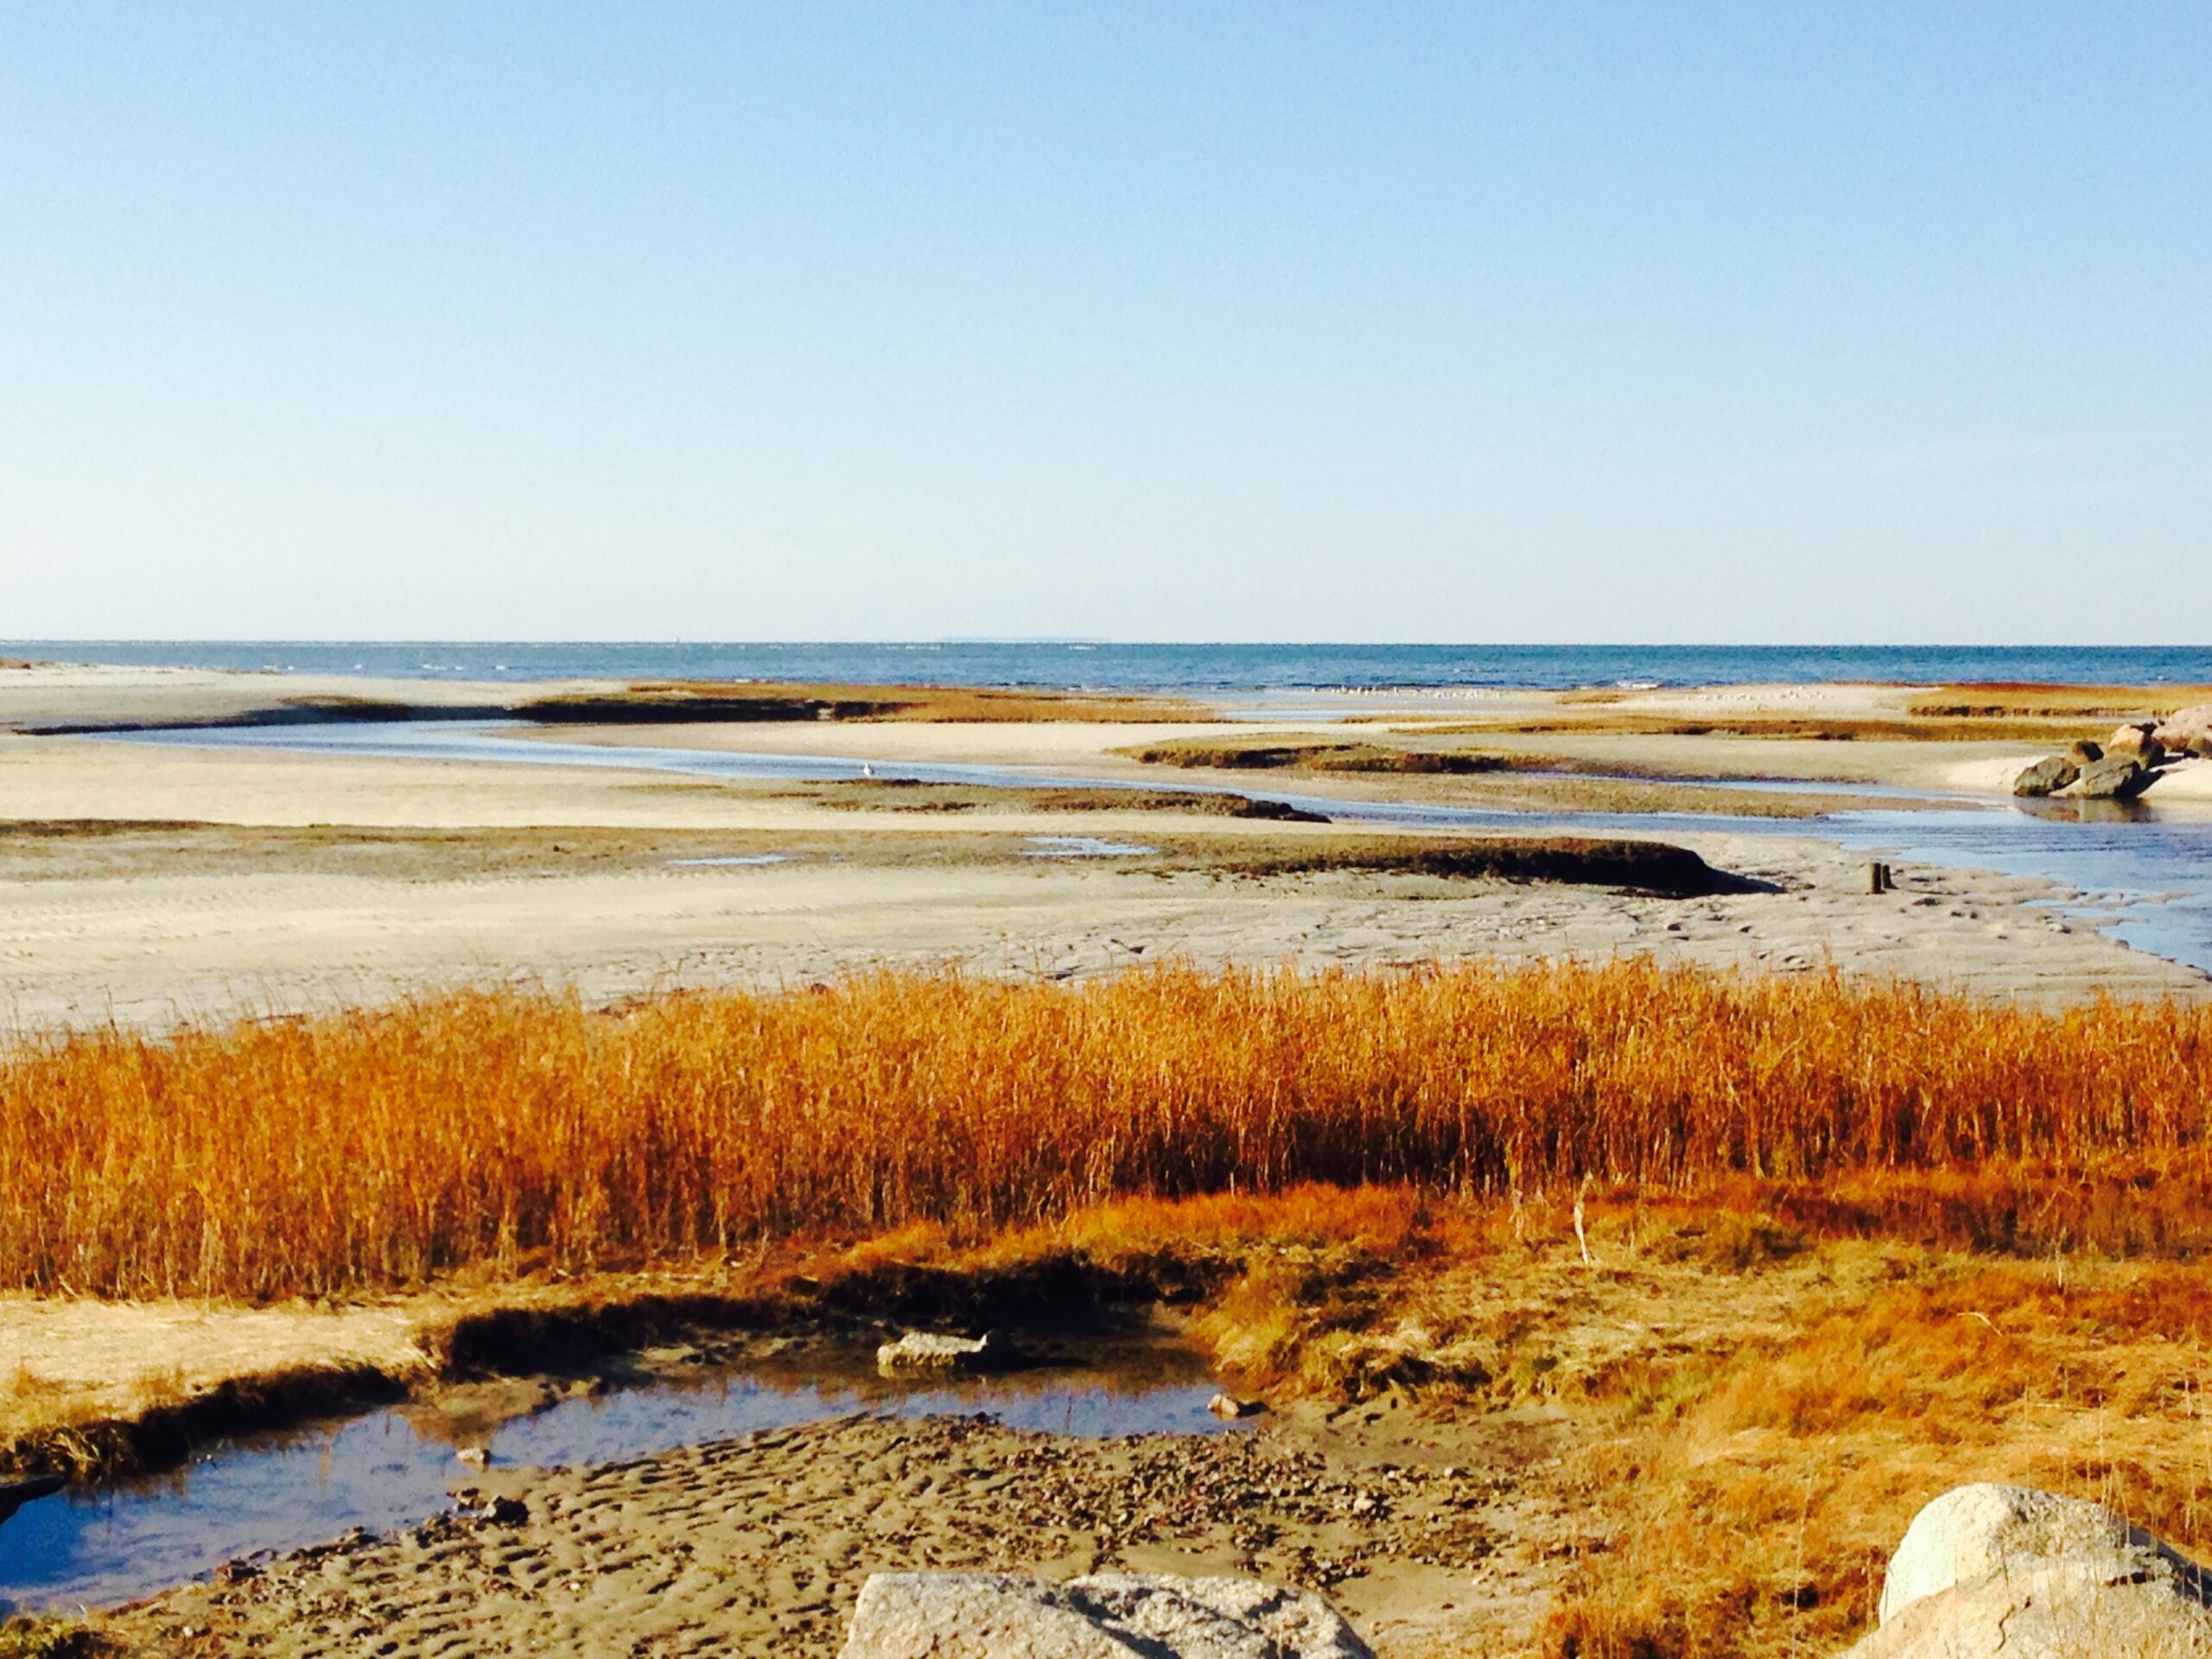 Cape Cod at Thanksgiving